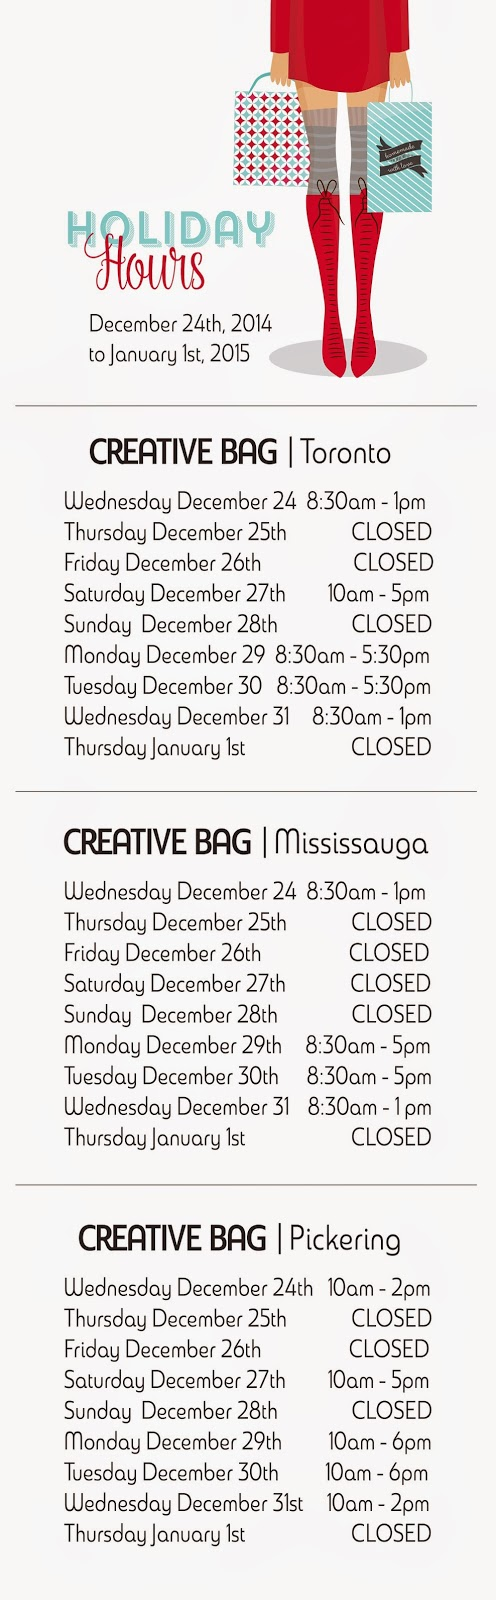 holiday hours at Creative Bag